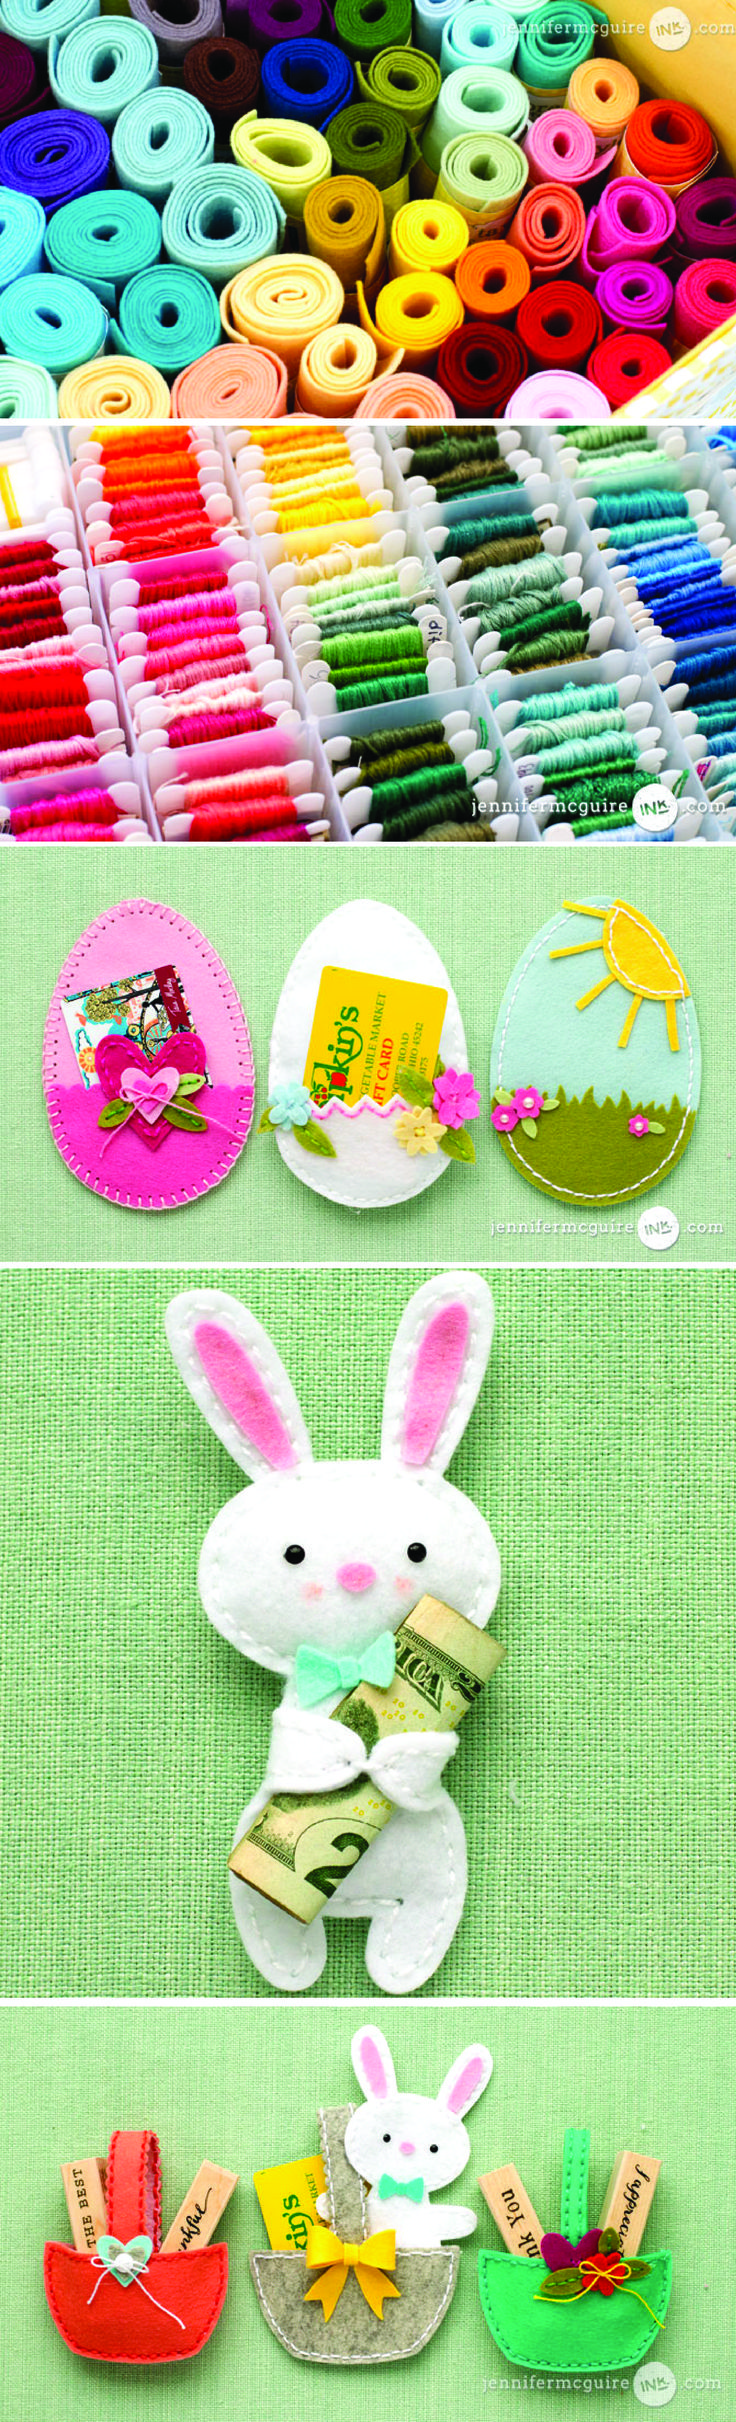 Stitching felt die cut tips giveaway money holders easter easter crafts negle Gallery